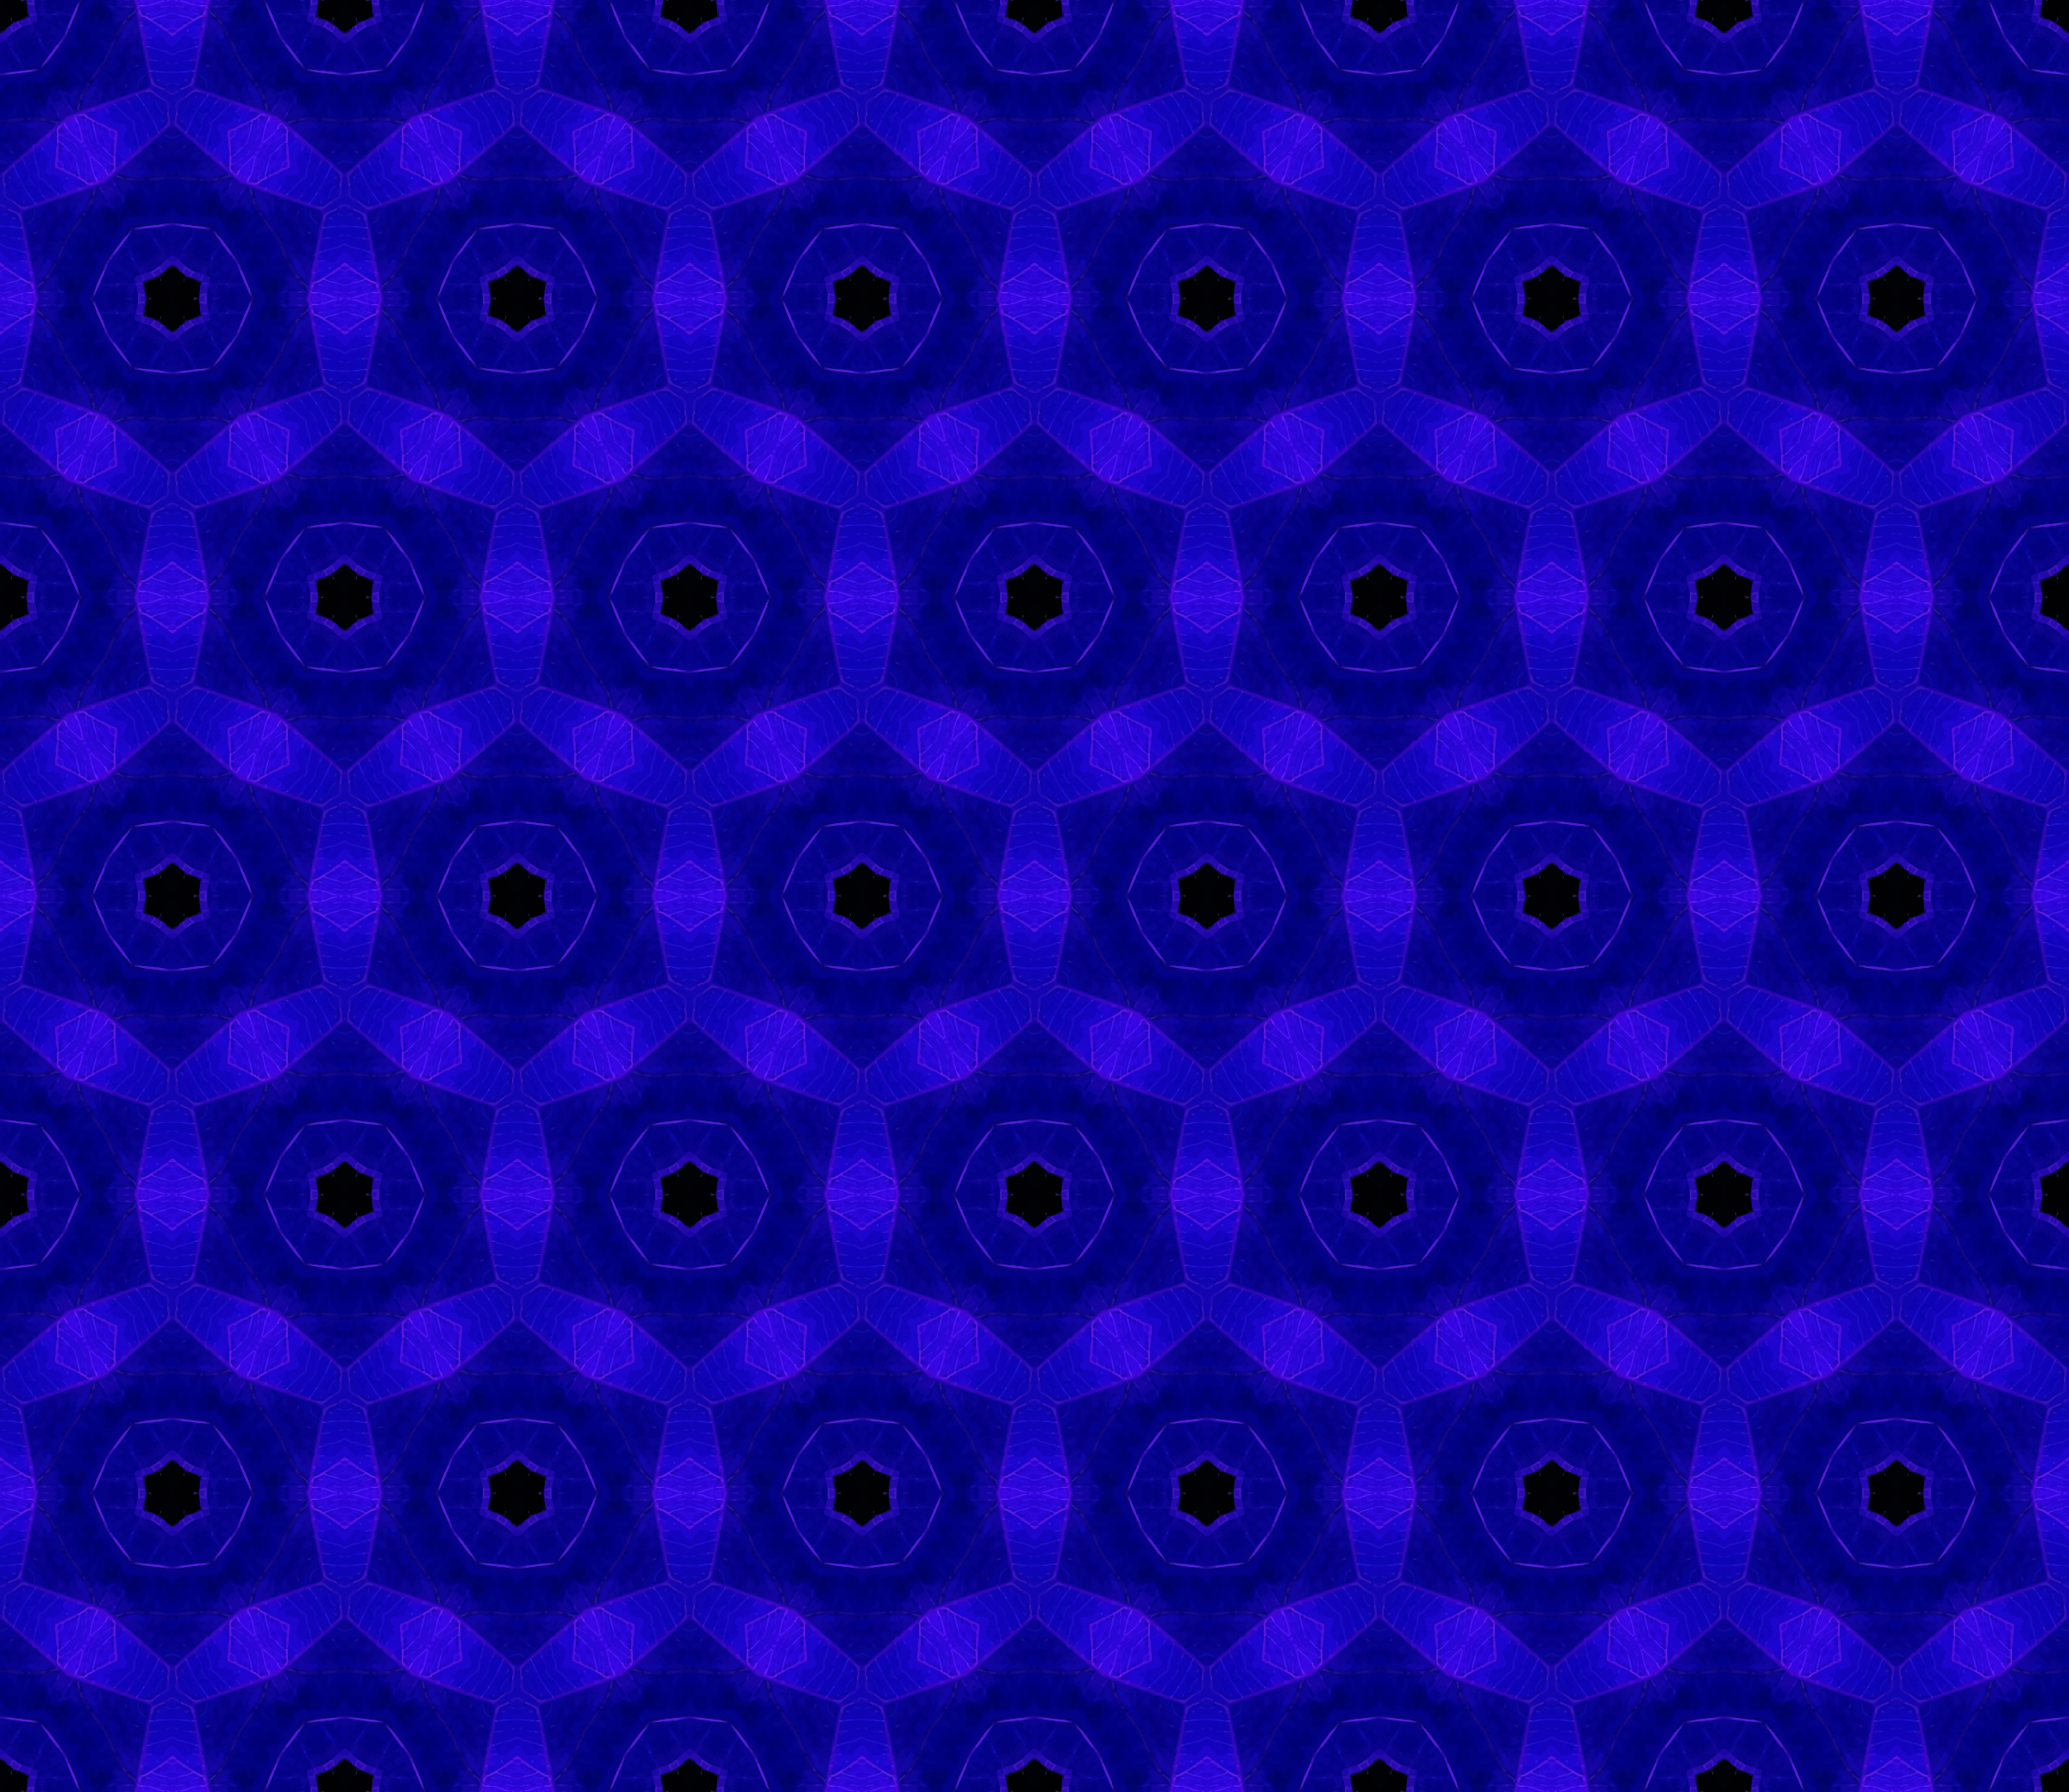 Background pattern 169 (colour 3) by Firkin